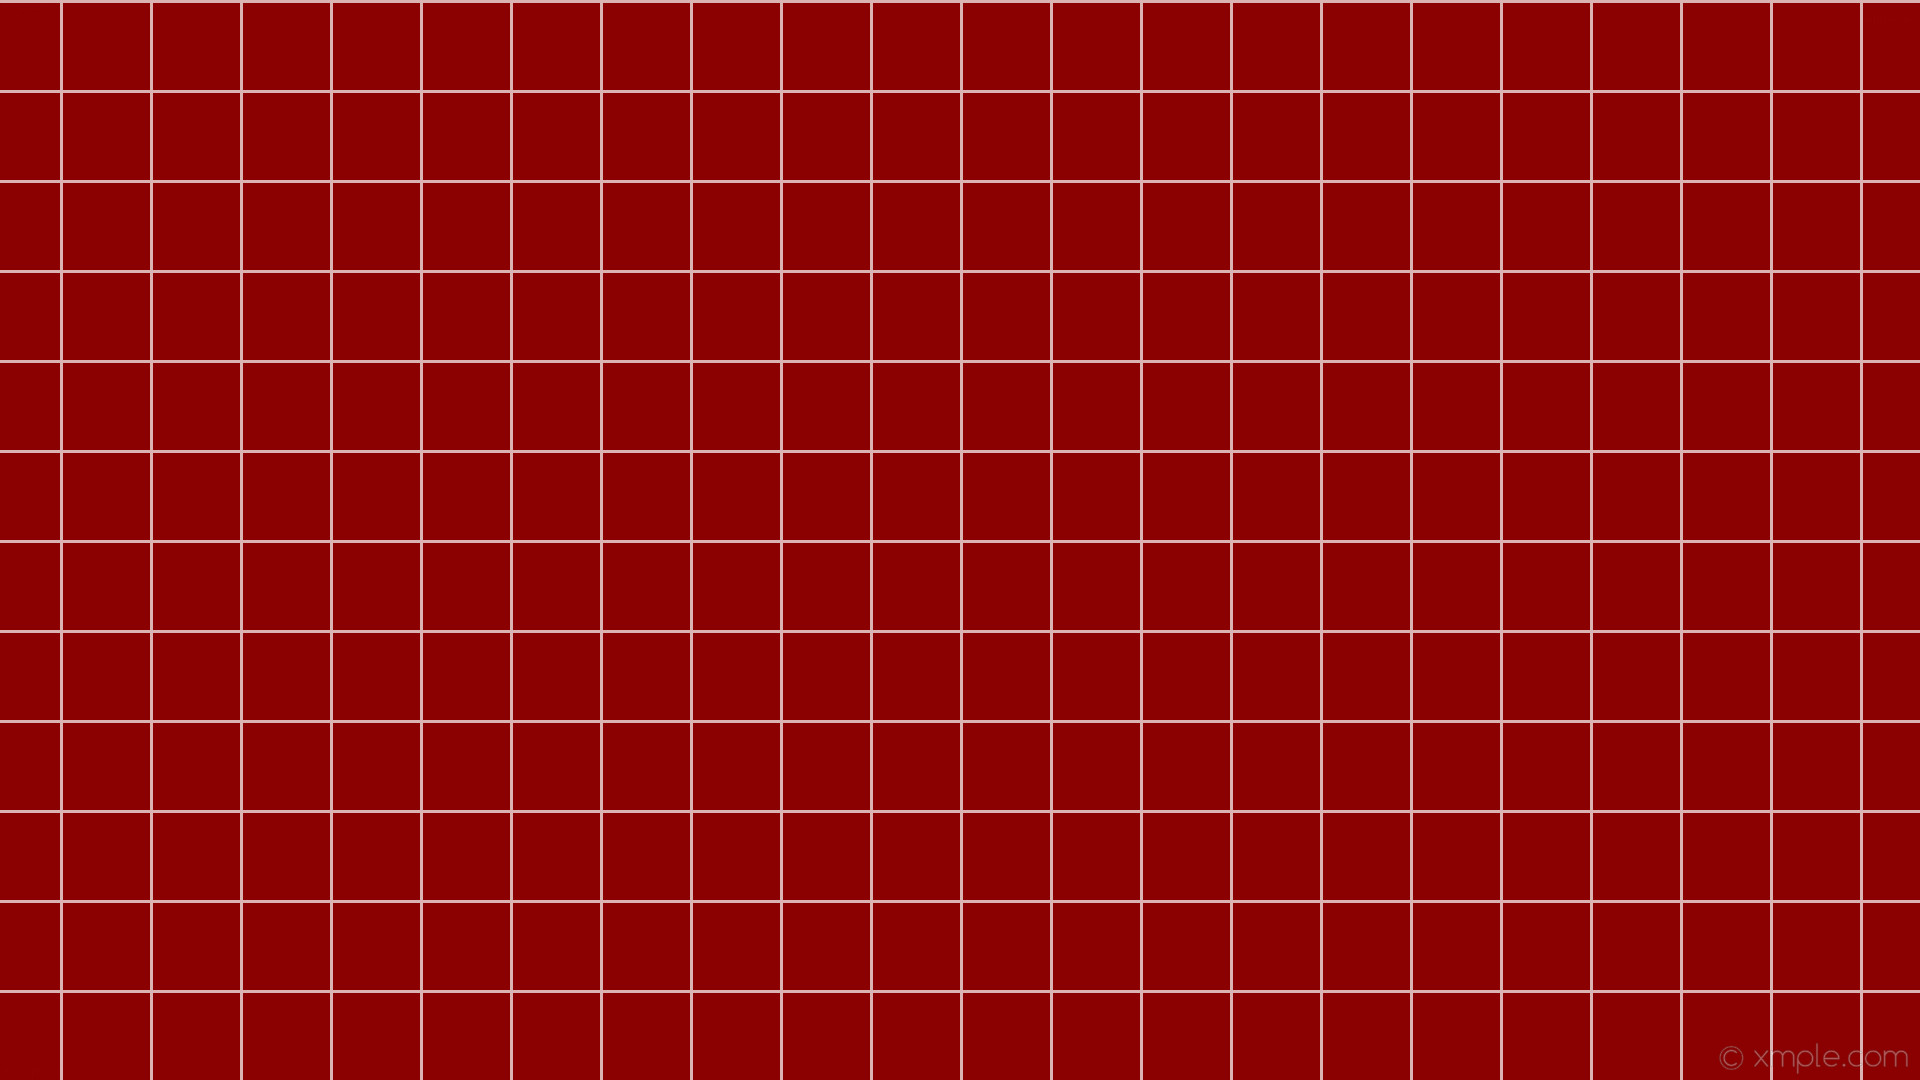 1920x1080 wallpaper graph paper red grid white dark red #8b0000 #ffffff 0° 3px 90px